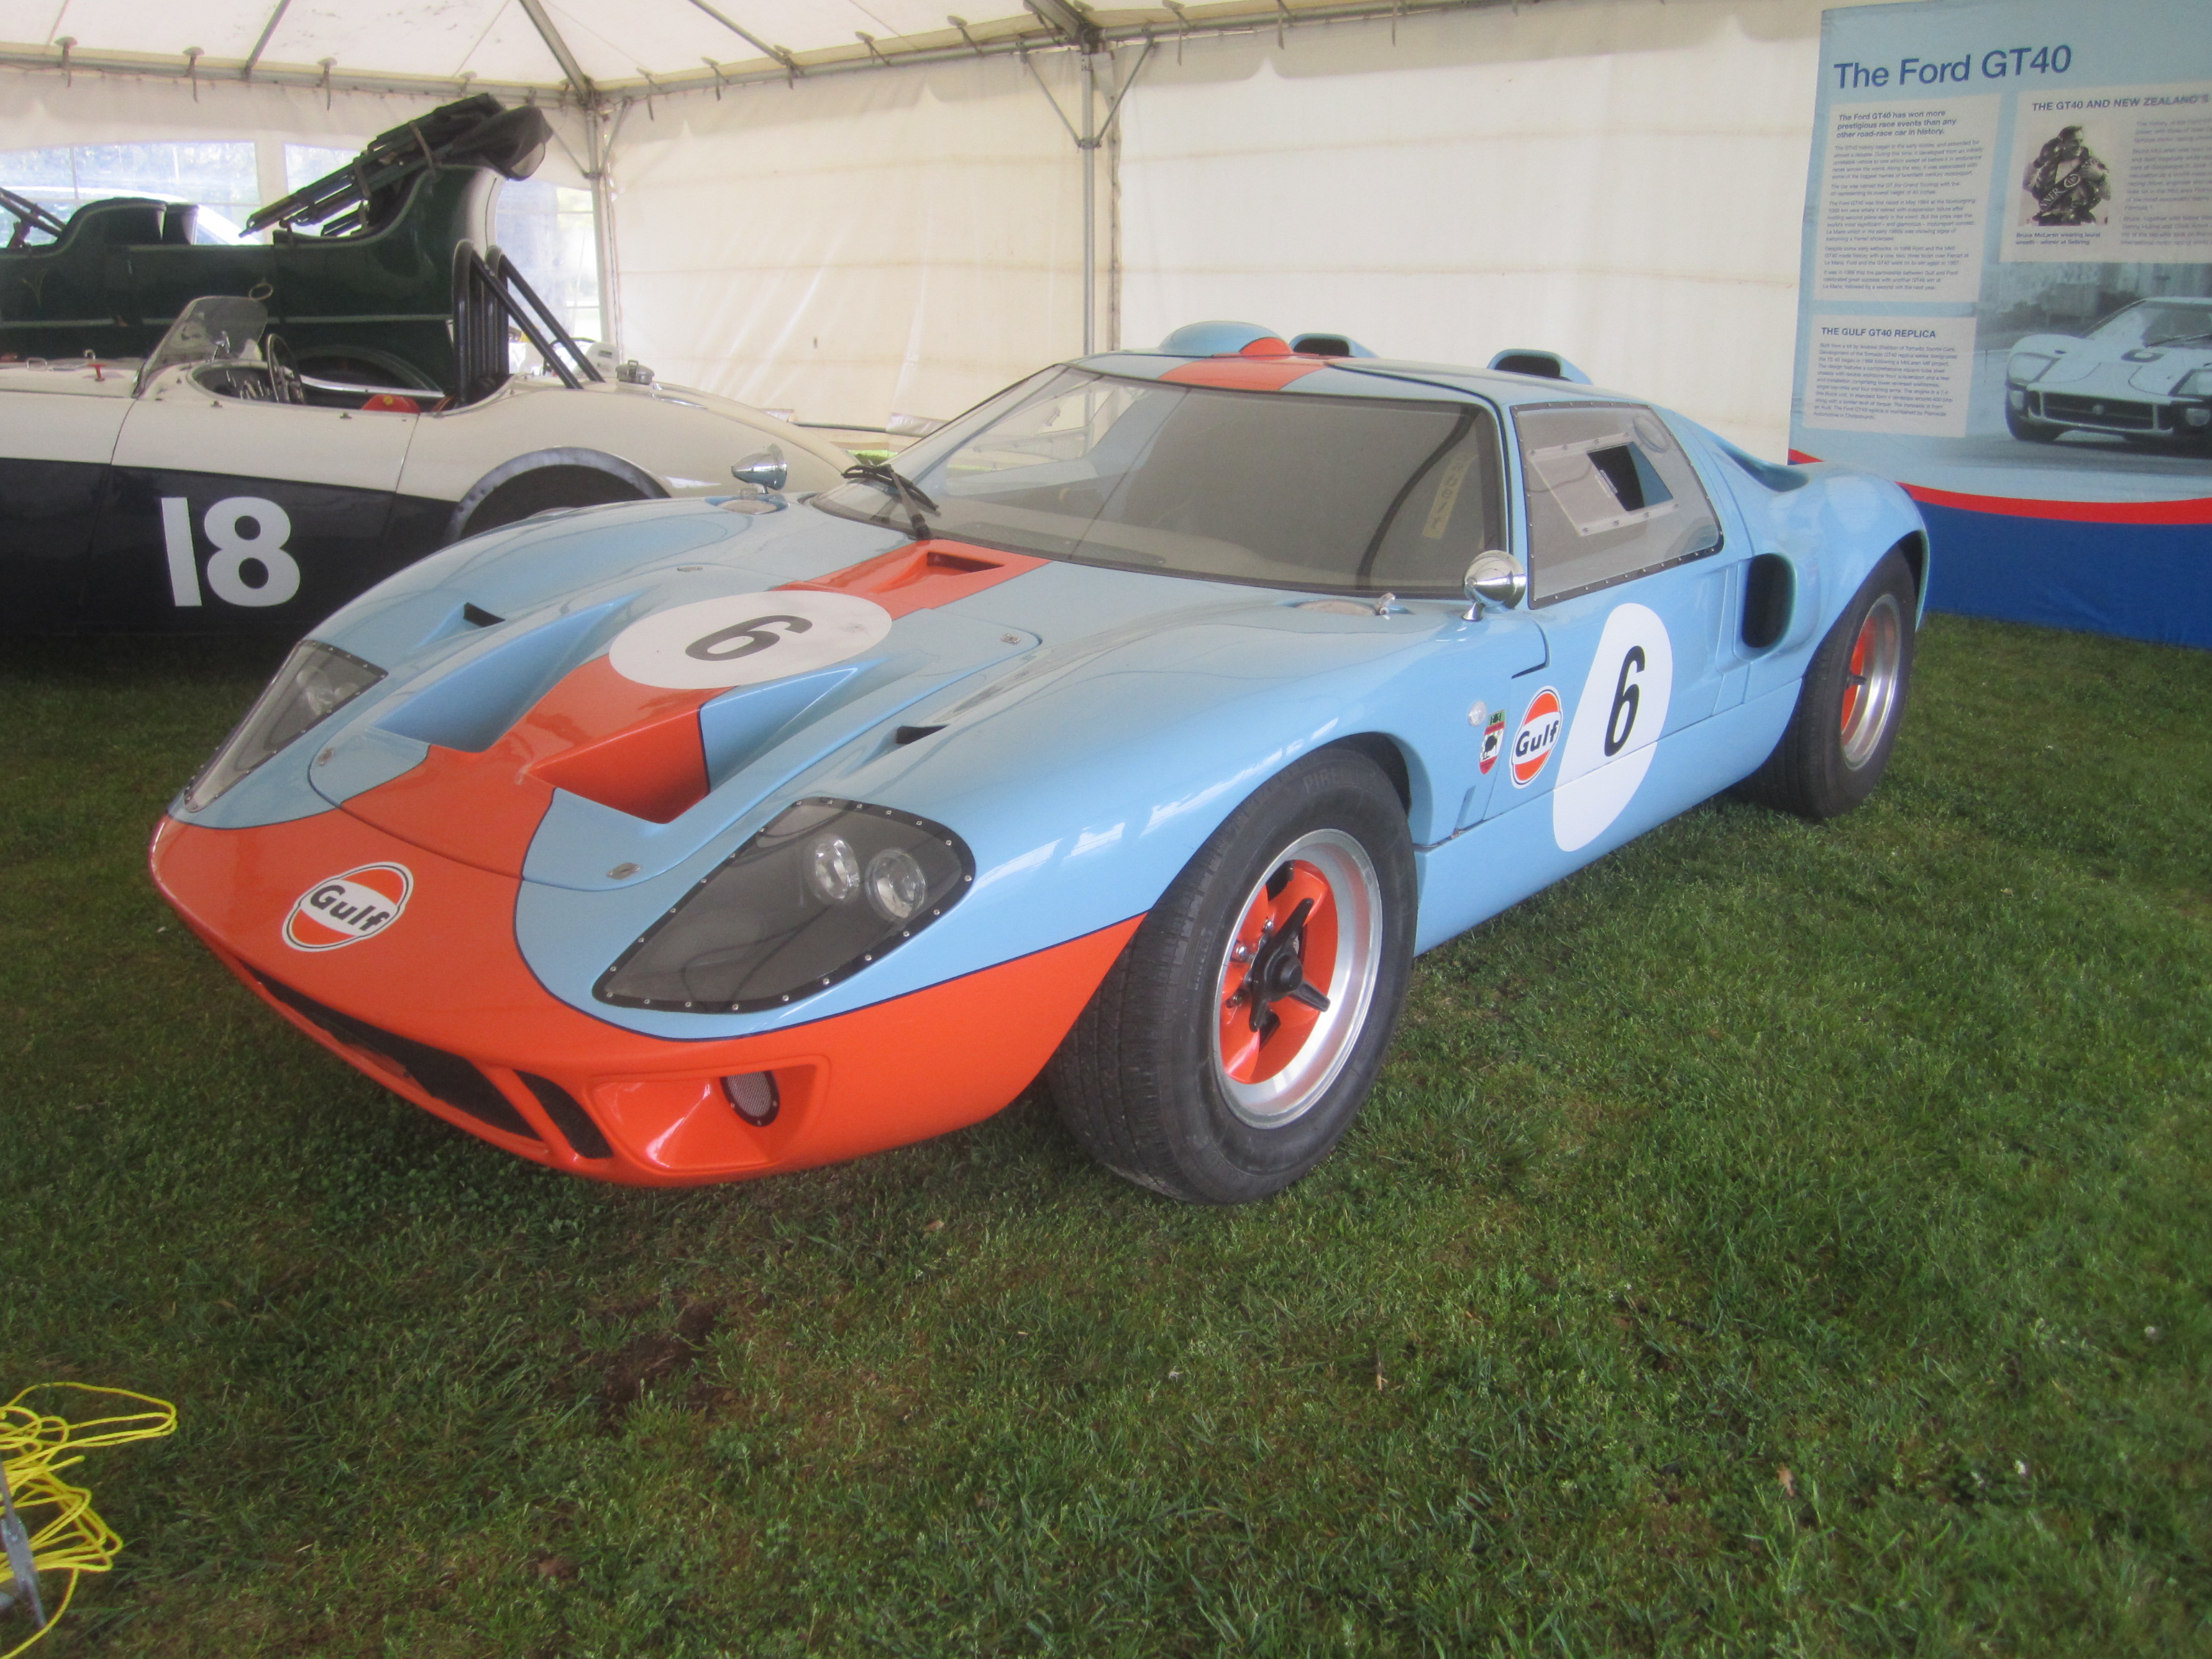 2011 ford gt40 for sale - File Ford Gt40 Replica Jpg